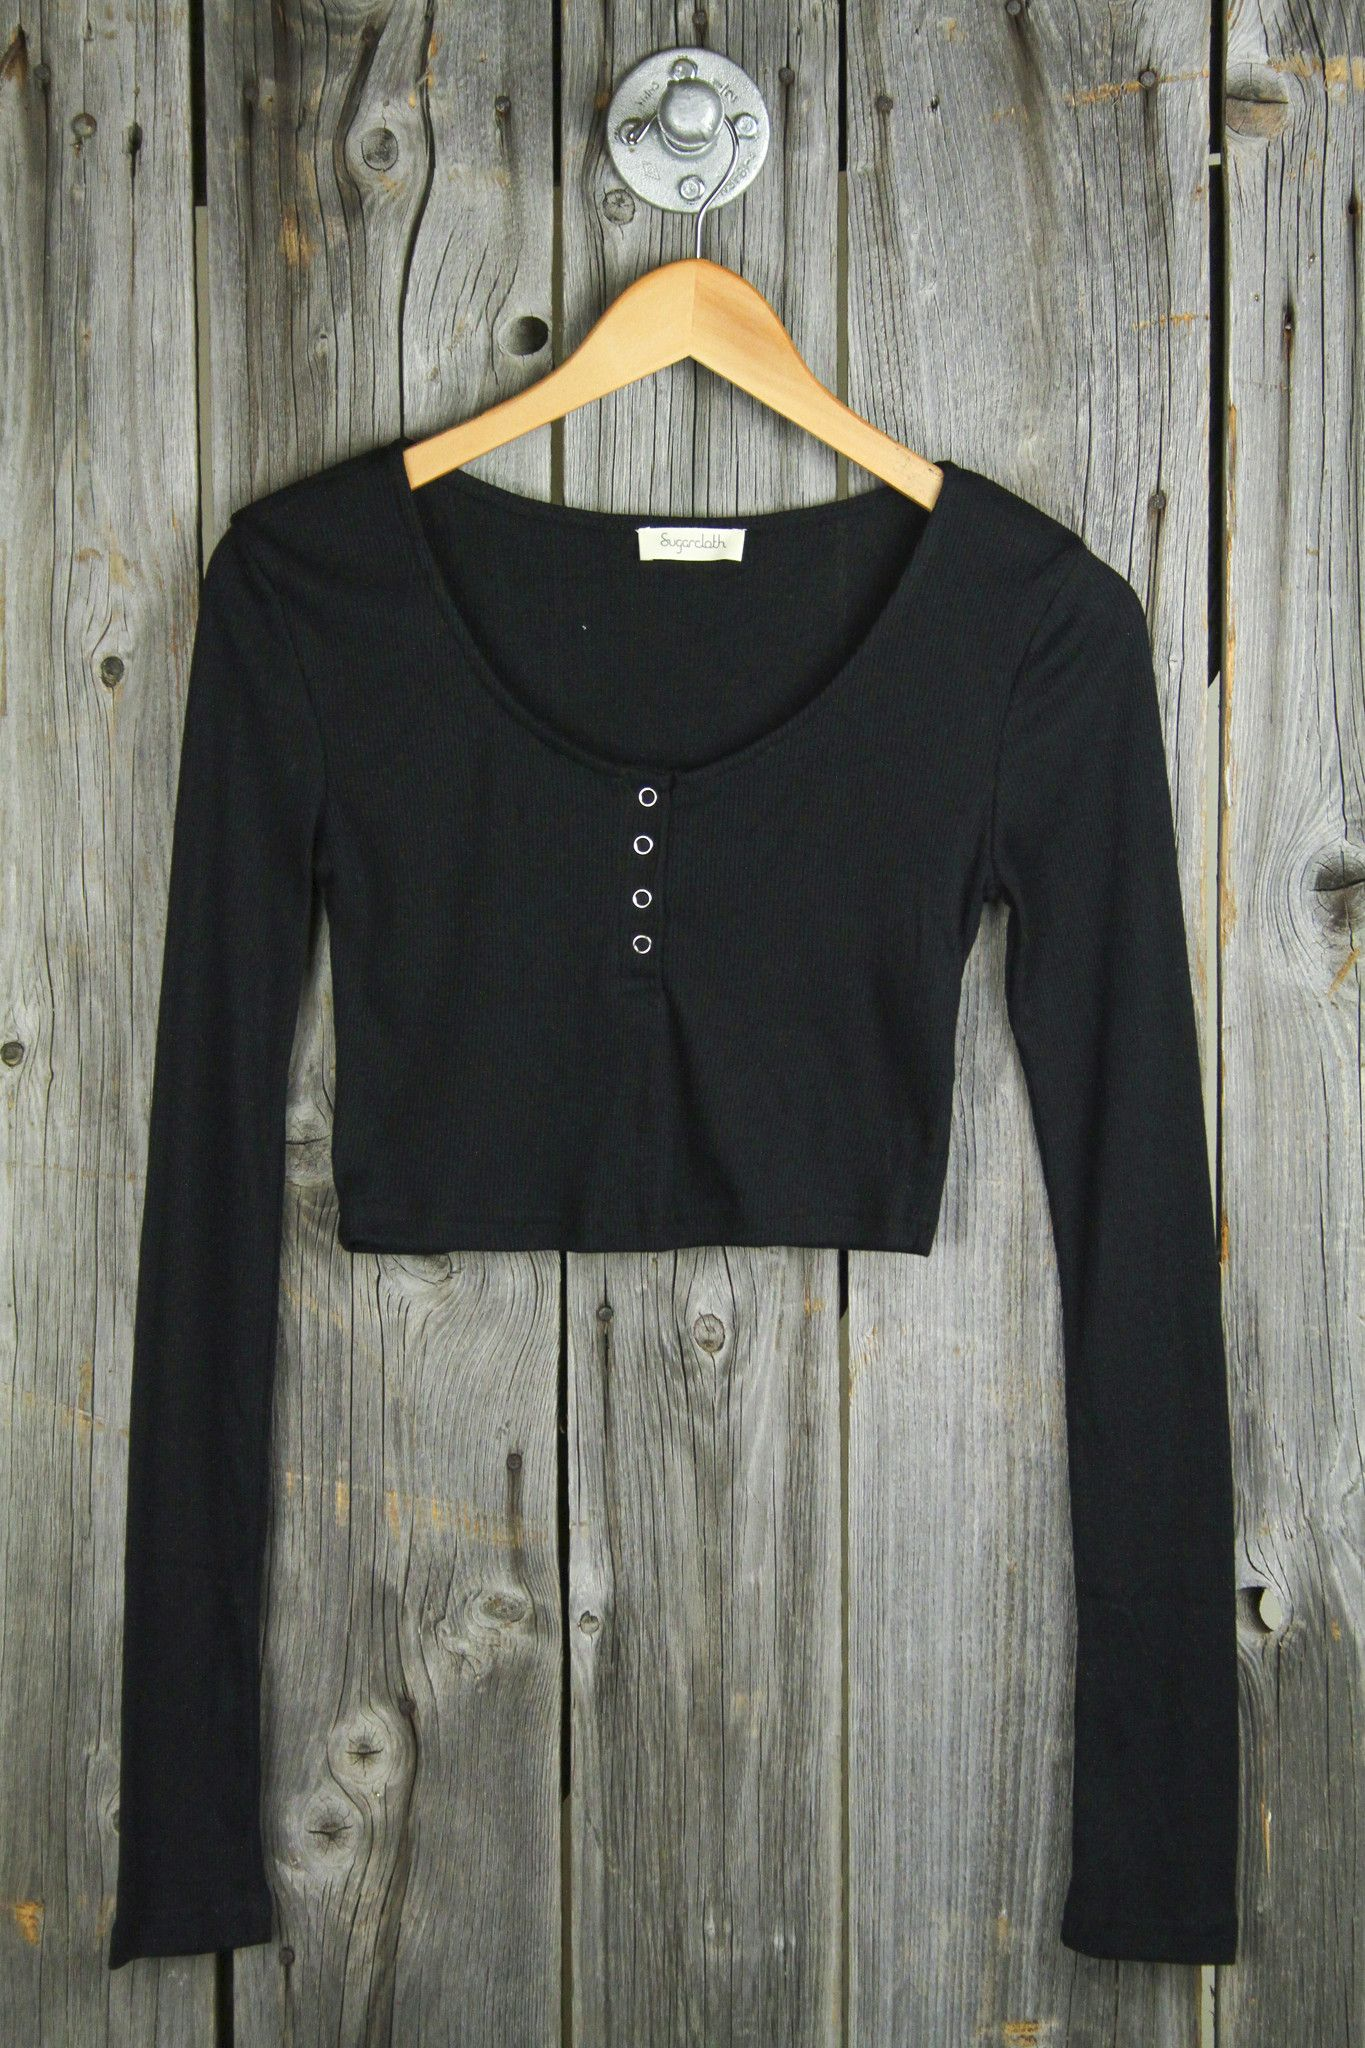 6f19aa3052820 Cropped Rib Henley Top - Black Crop Top Dress